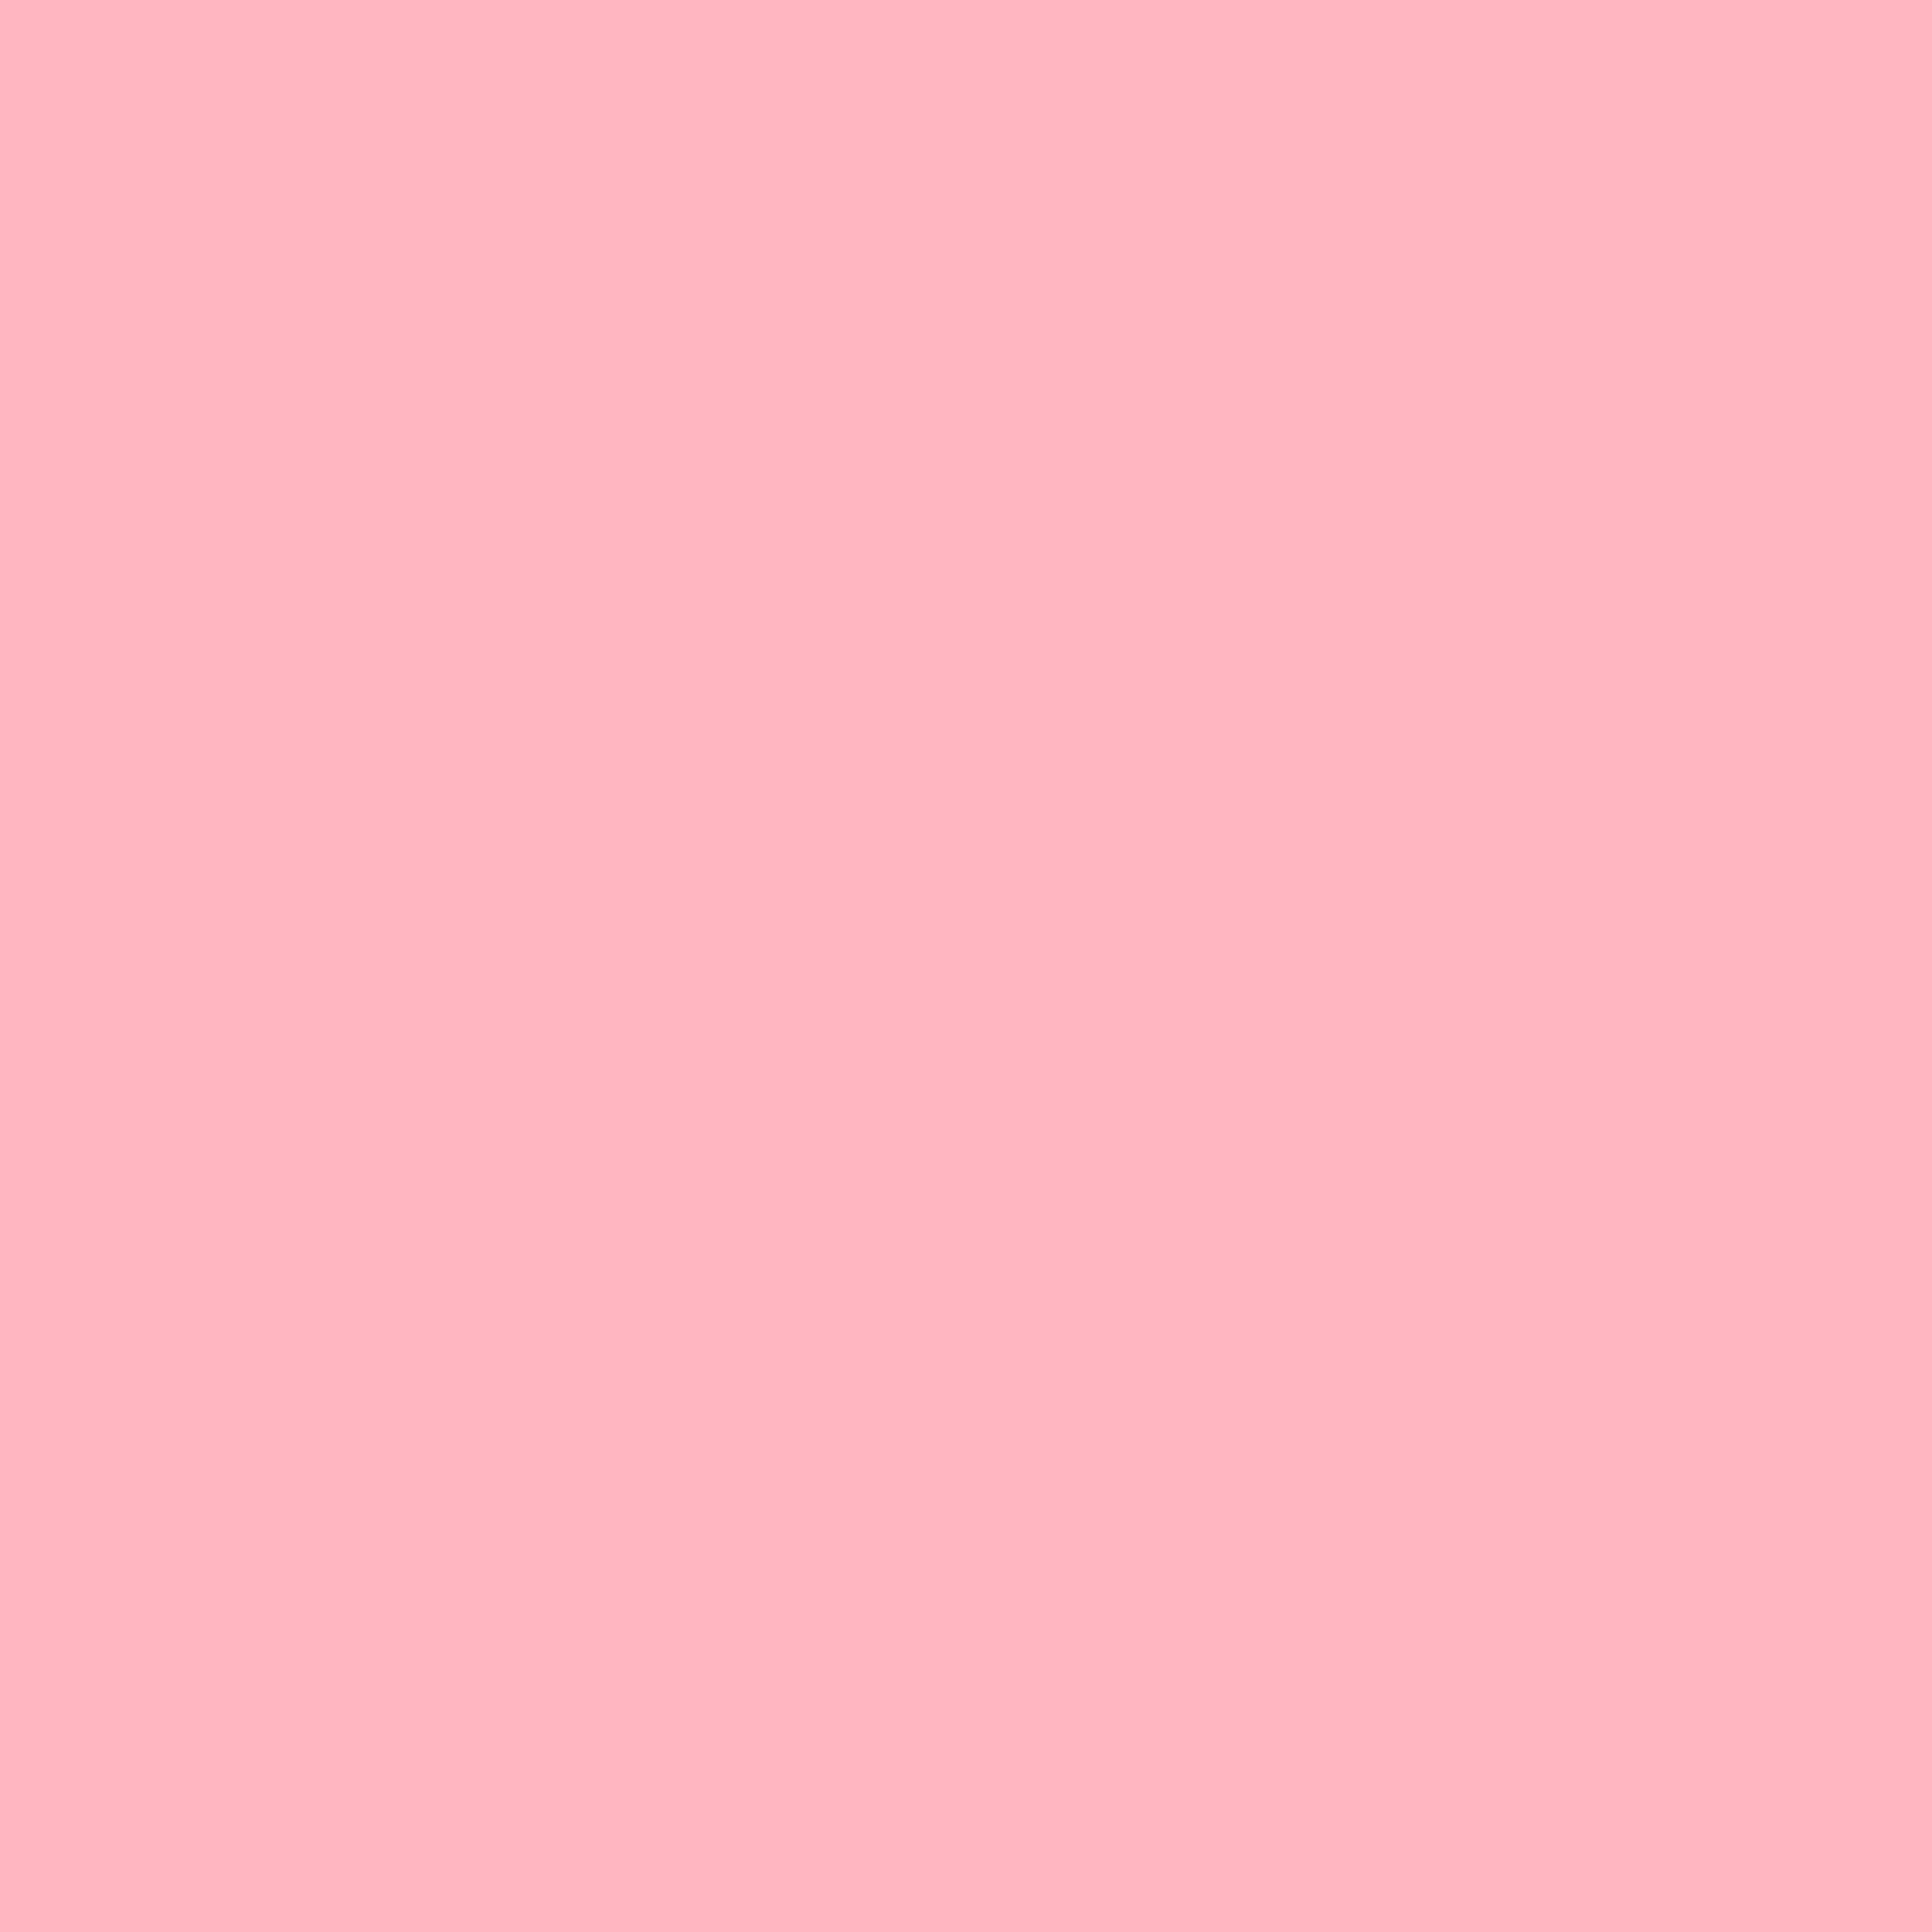 Pink Solid Color Backgrounds 2048x2048